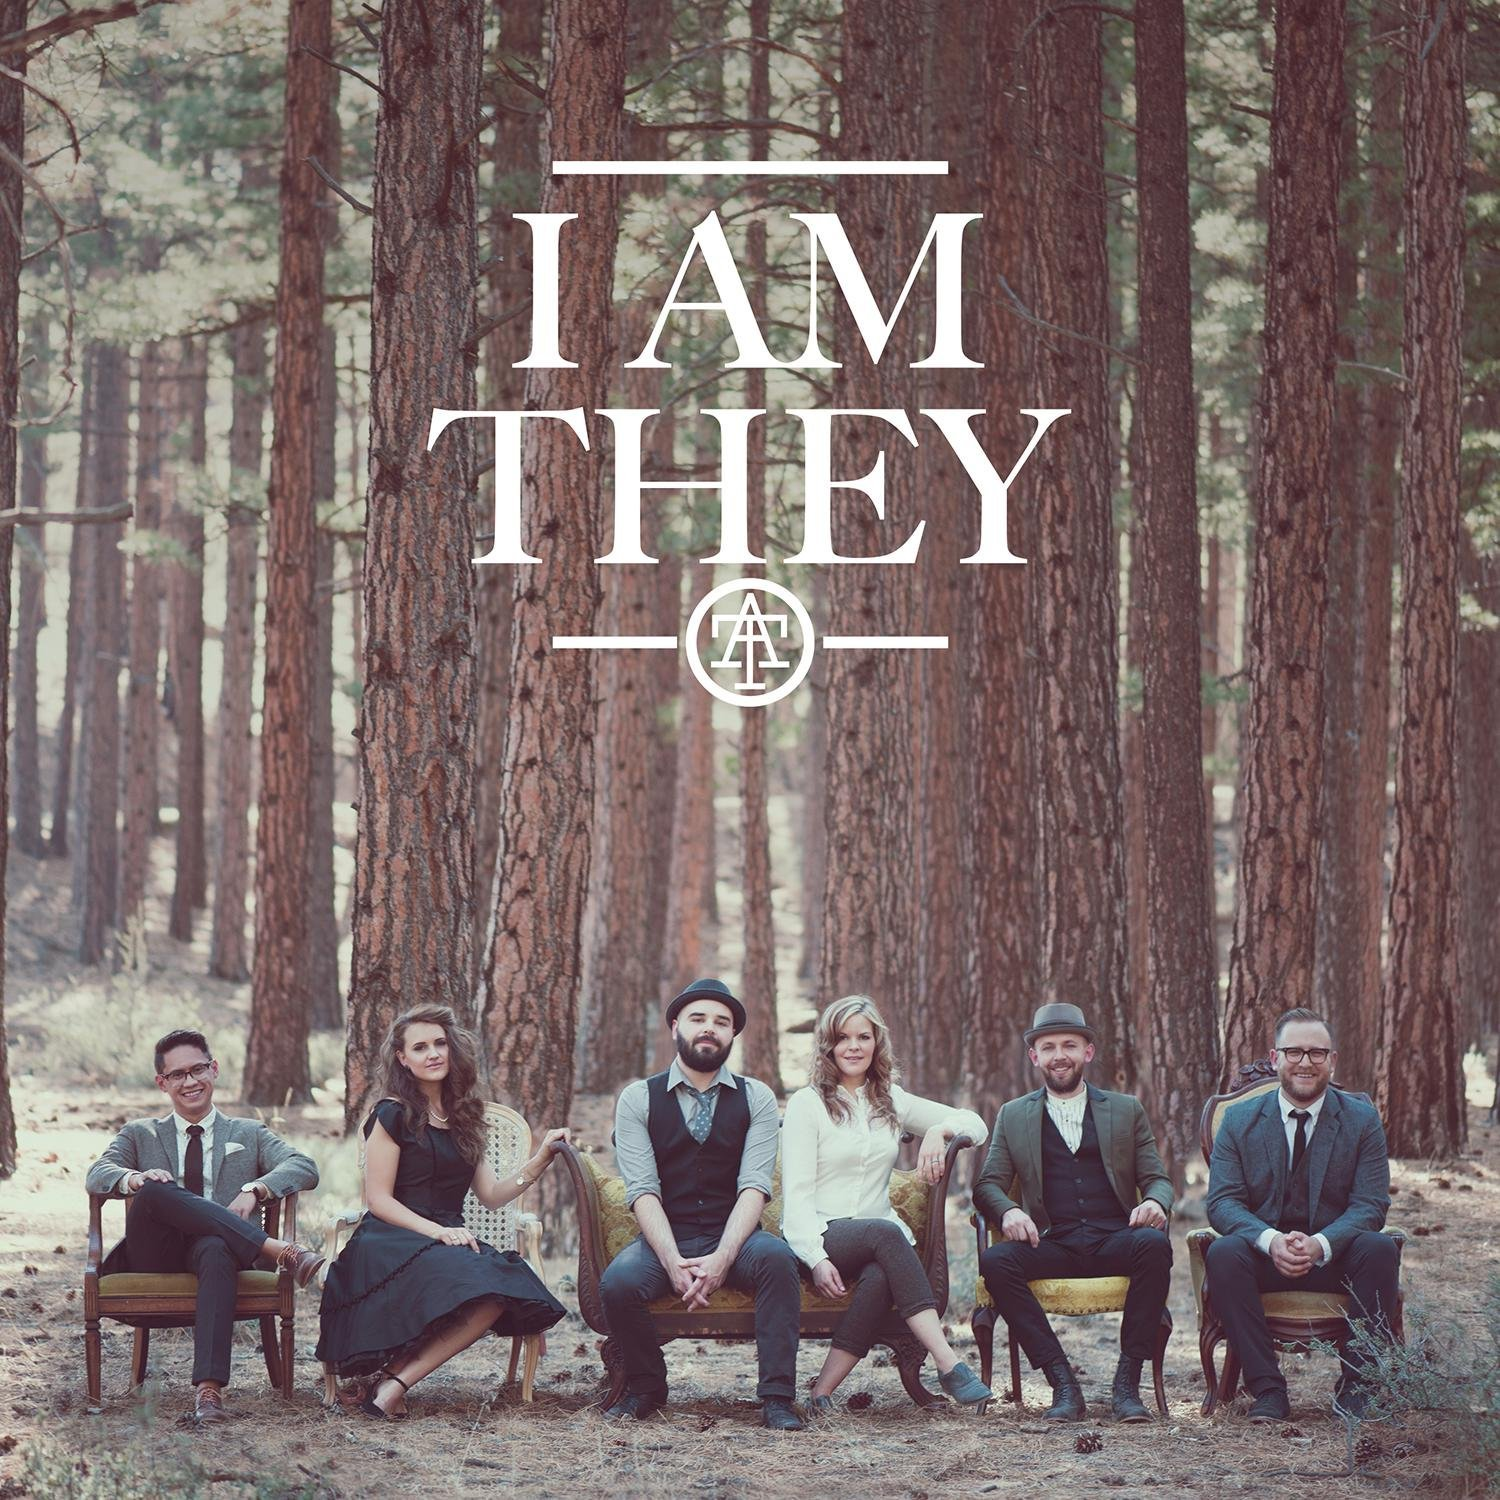 I Am They - I Am They